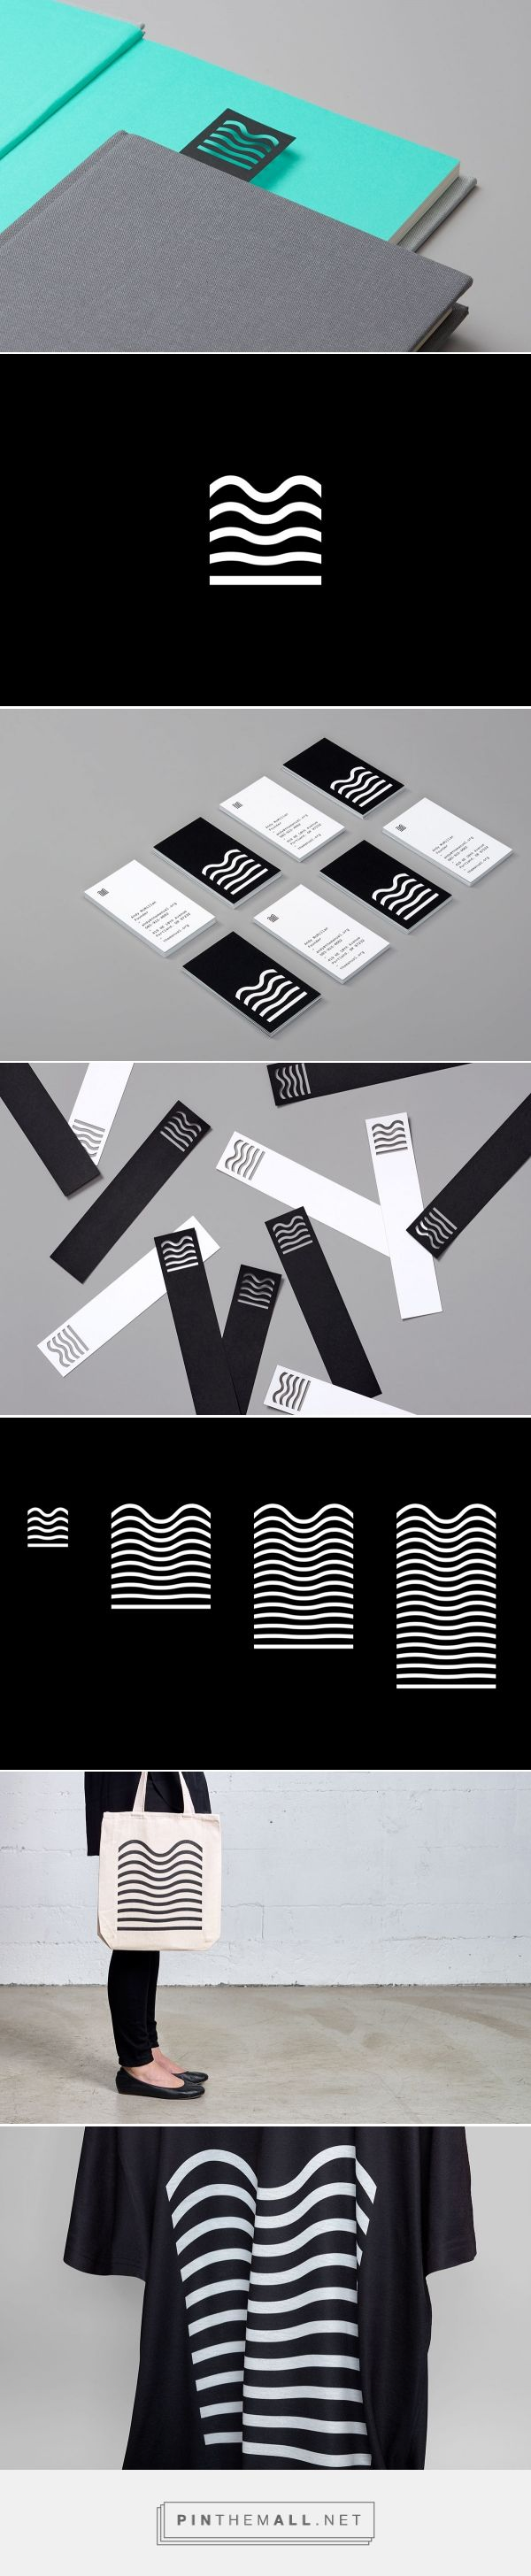 The Manual – Visual Identity System by Moniker SF